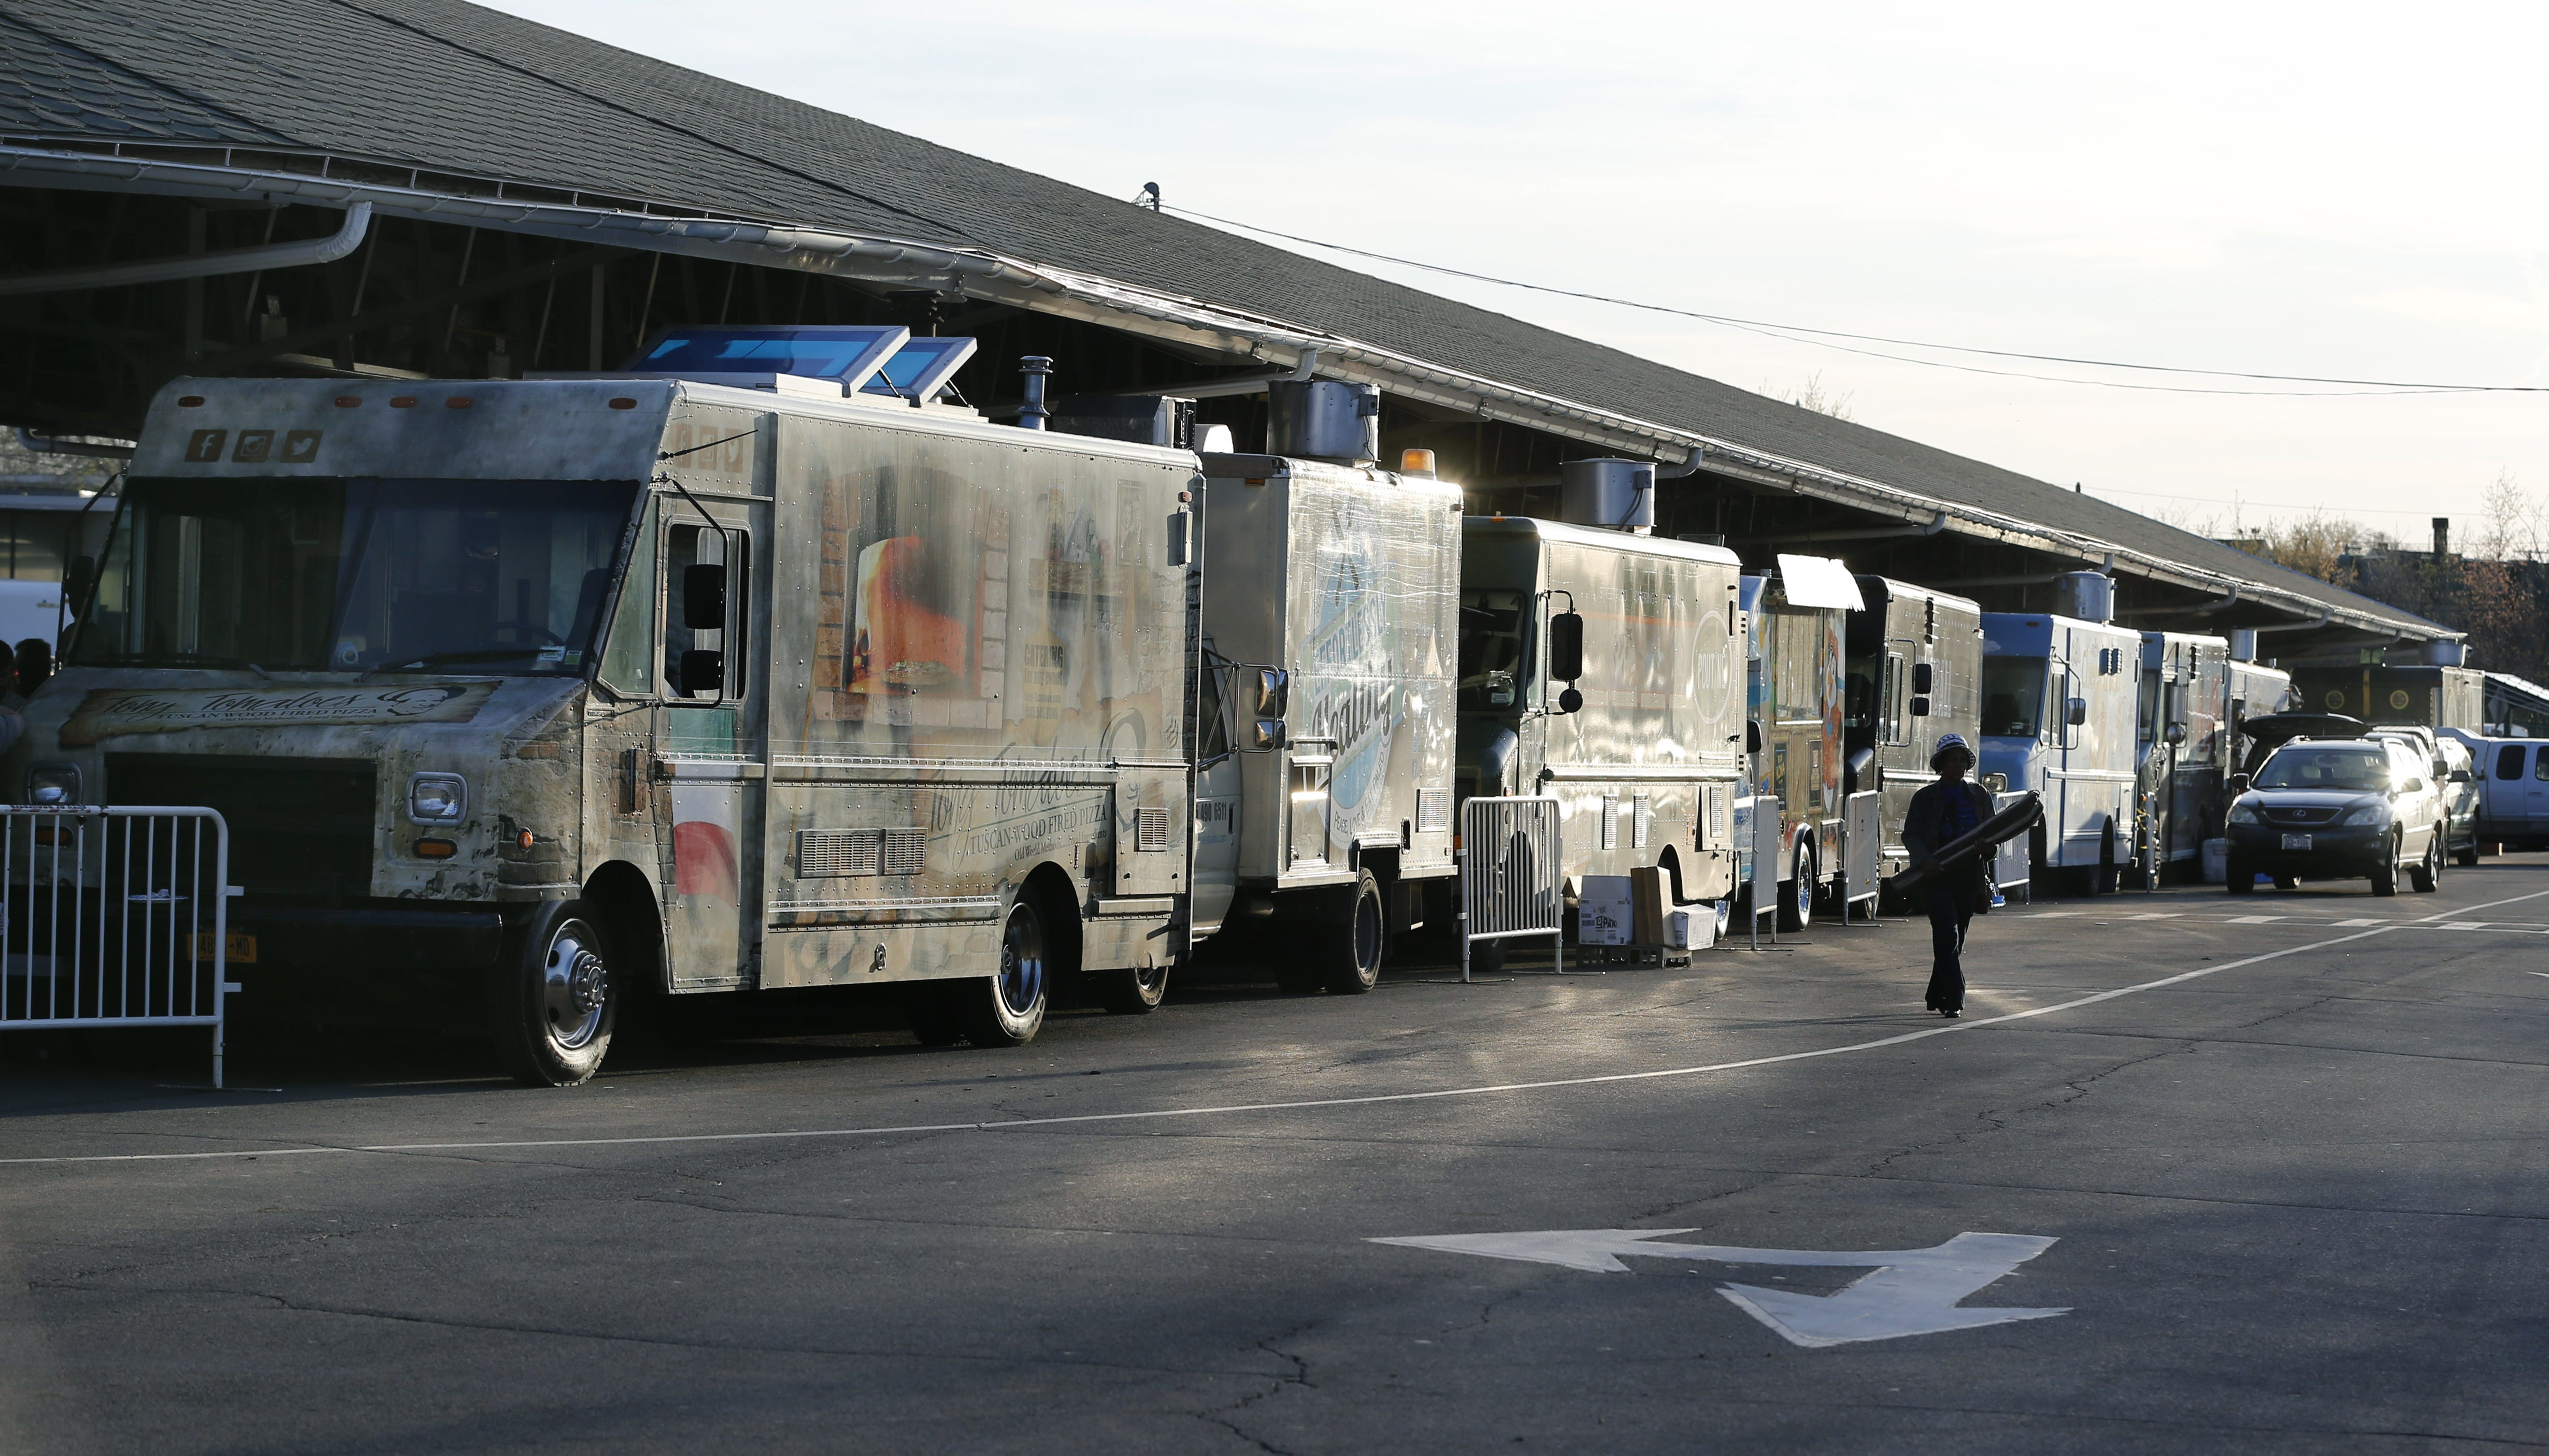 Rochester S Food Truck Rodeo Is Back For 2019 Upstate